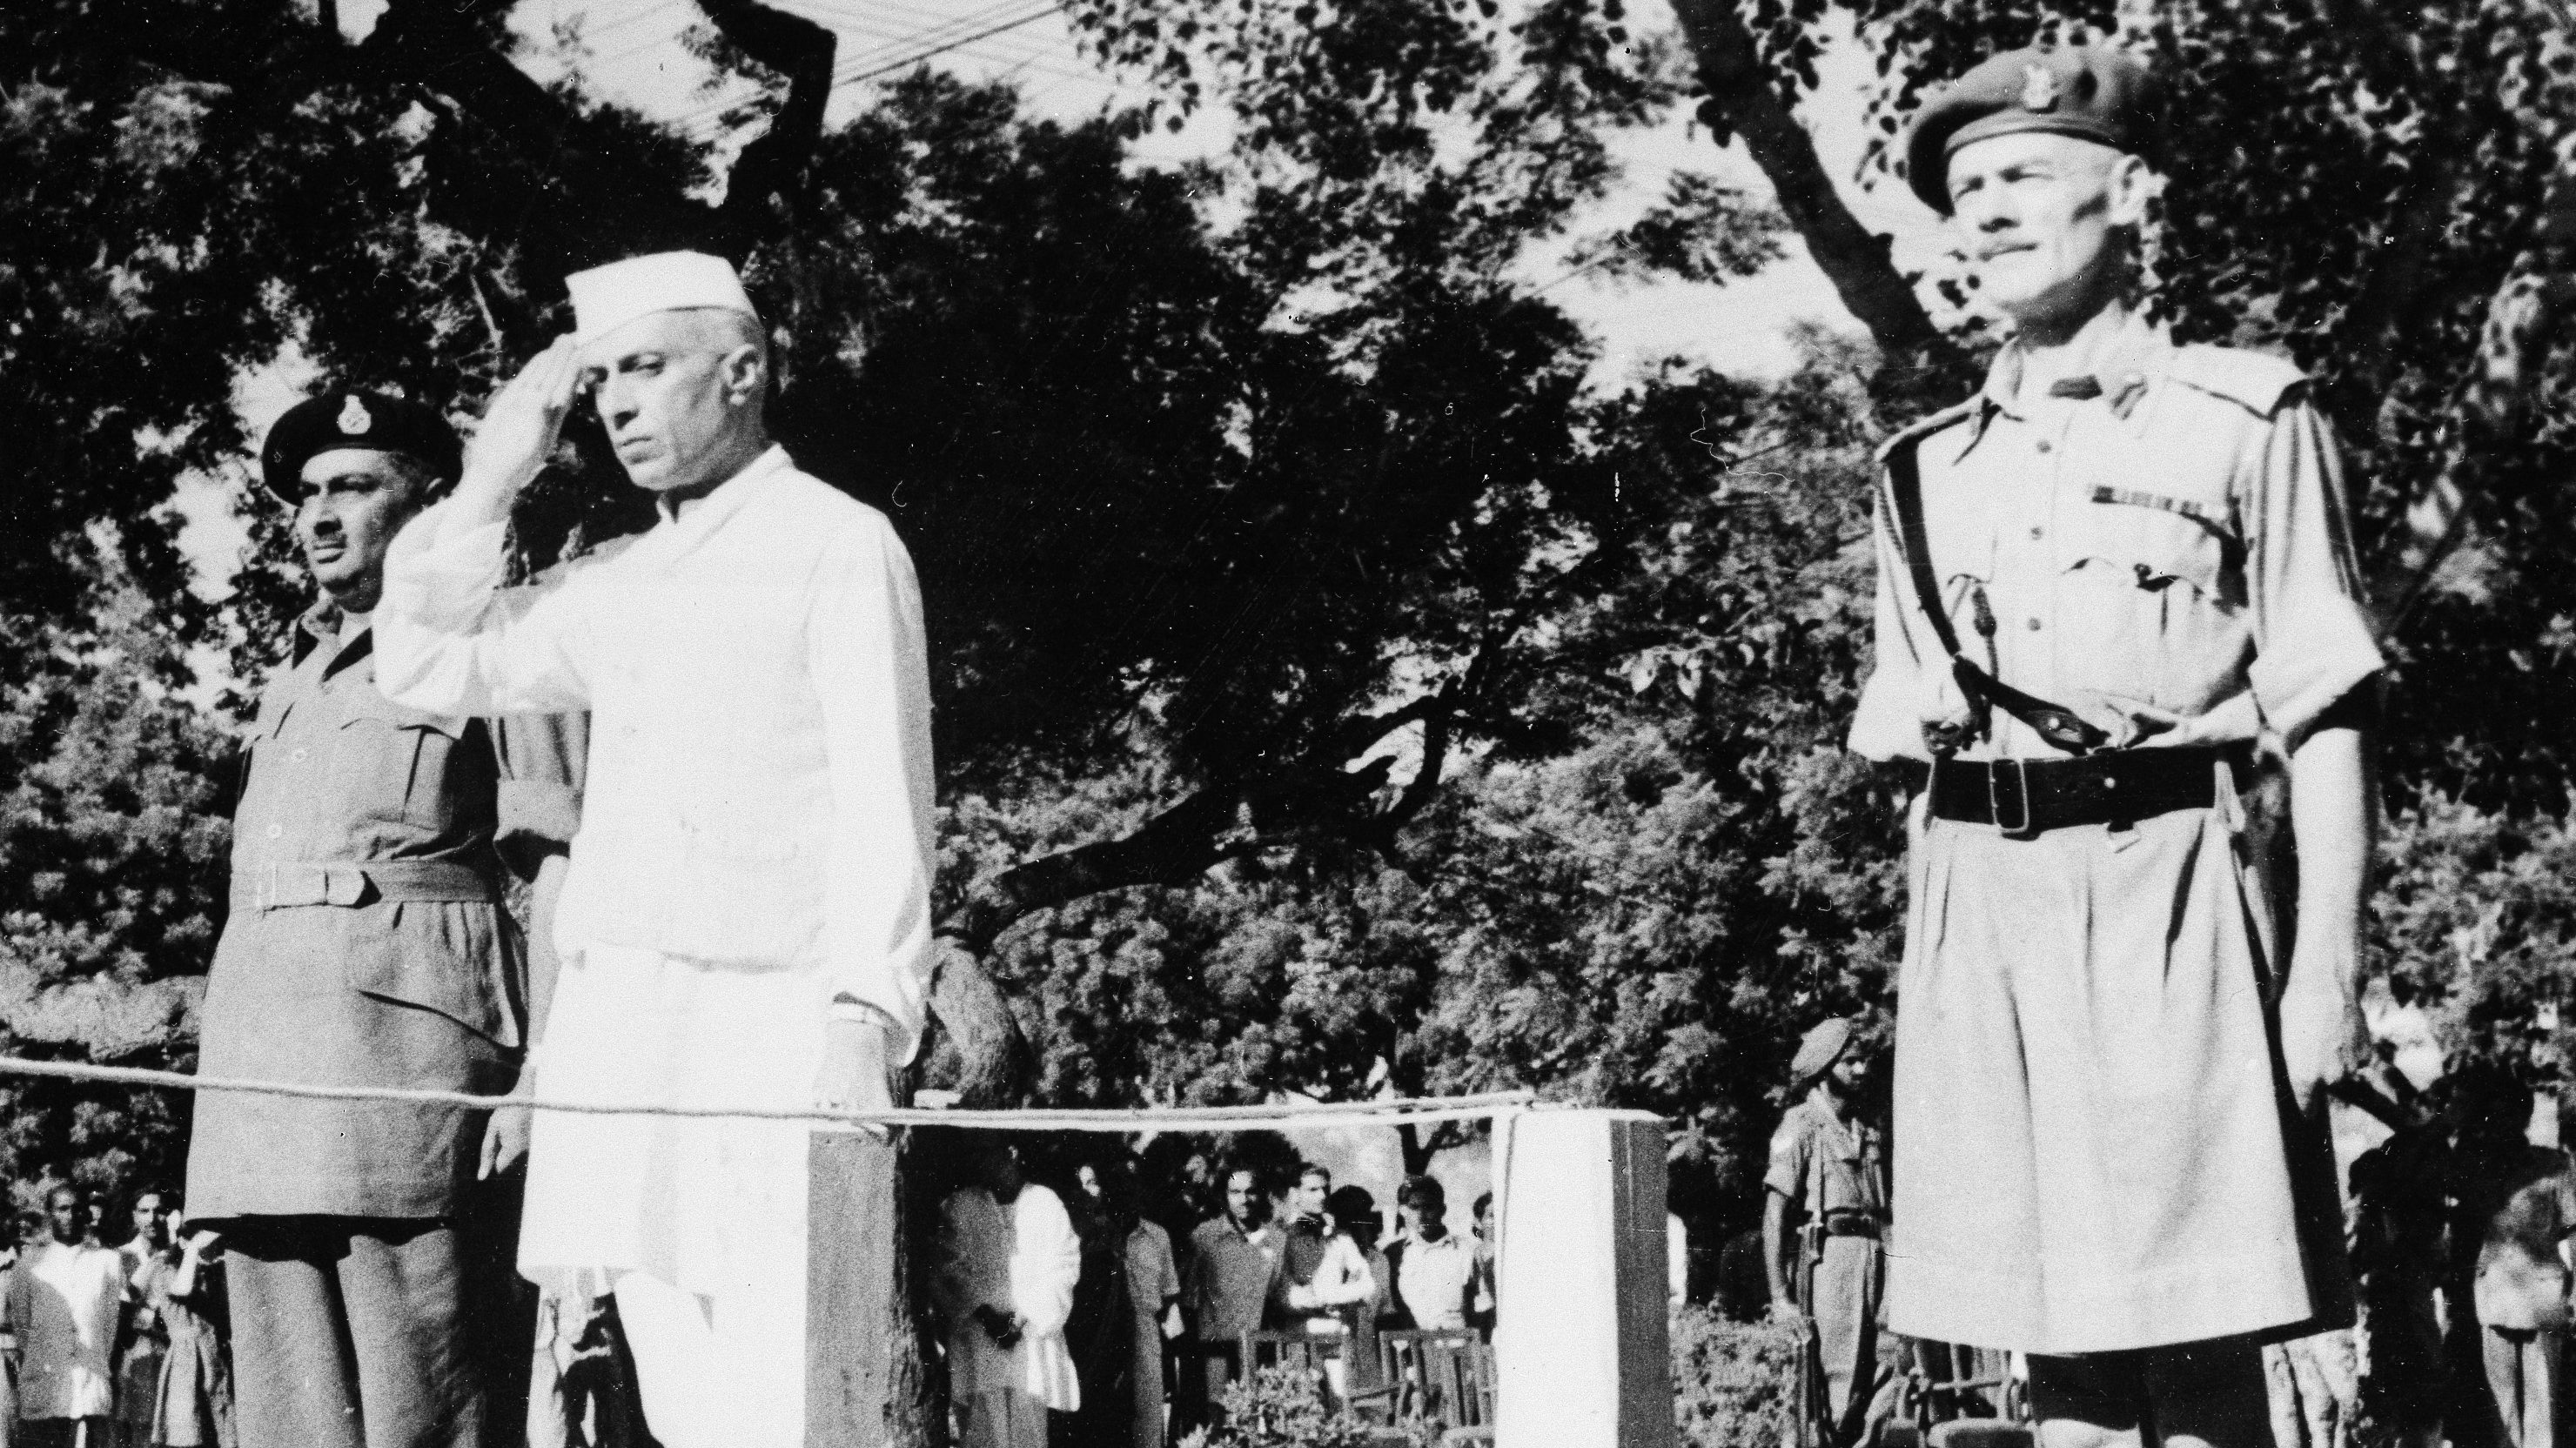 Jawaharlal Nehru salutes the flag as he becomes independent India's first prime minister on August 15, 1947 during the Independence Day ceremony at Red Fort, New Delhi, India.